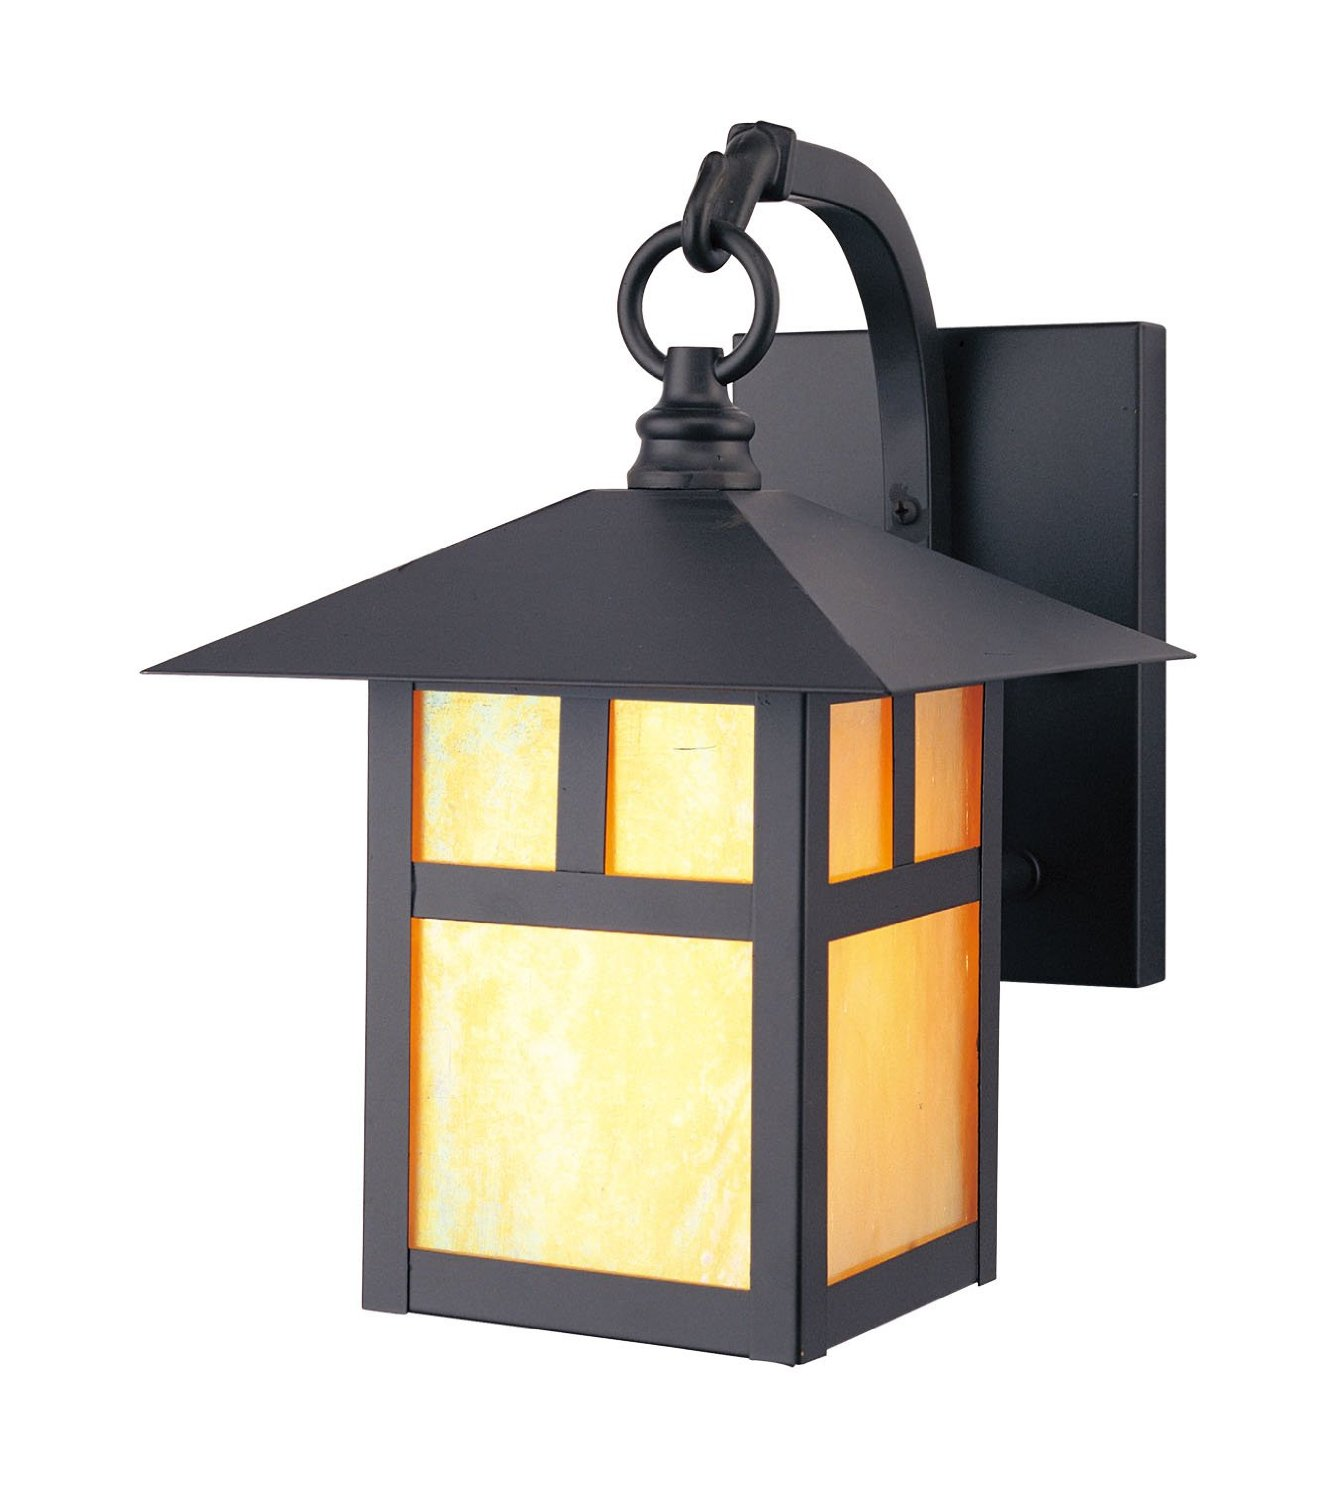 Wonderful Livex Lighting For Home Lighting Ideas: Cozy Livex Lighting 2131 07 Montclair Mission 1 Light Outdoor Bronze For Outdoor Lighting Ideas